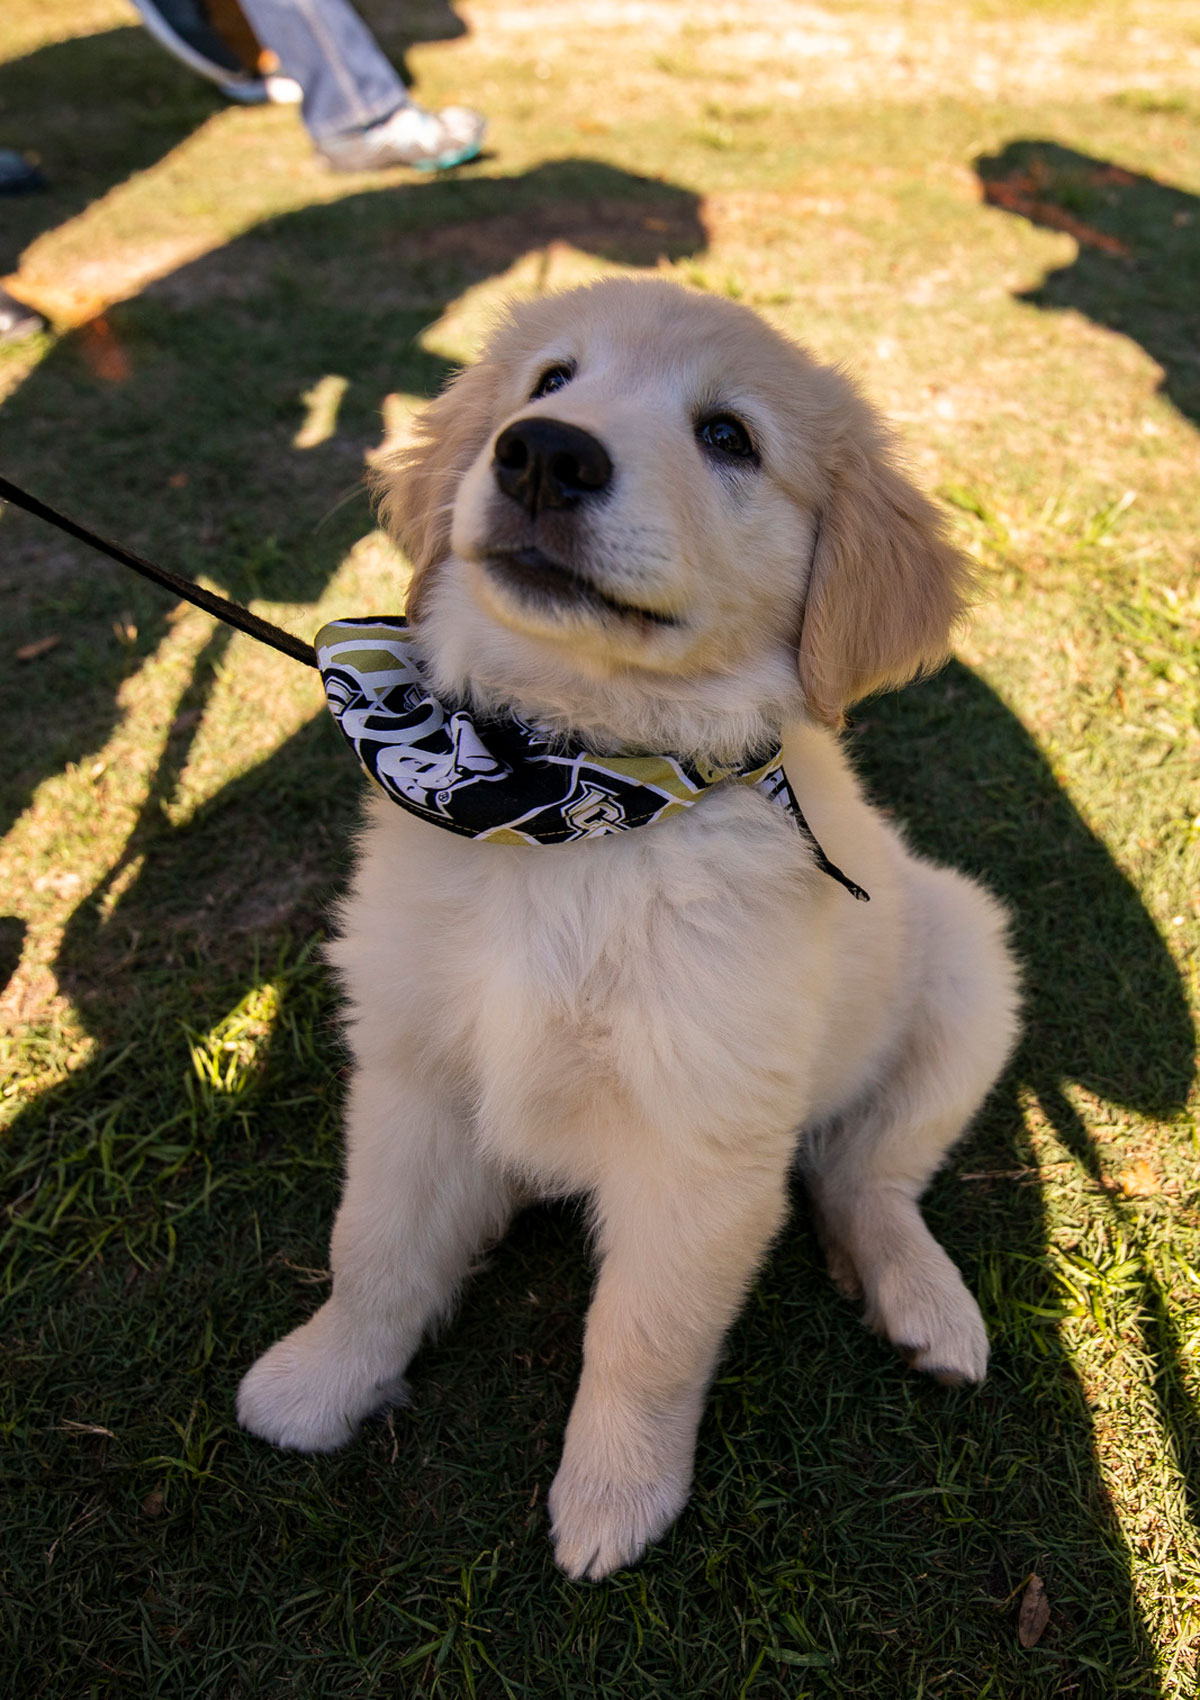 Golden Retriever puppy wearing a black and gold bandana looks up